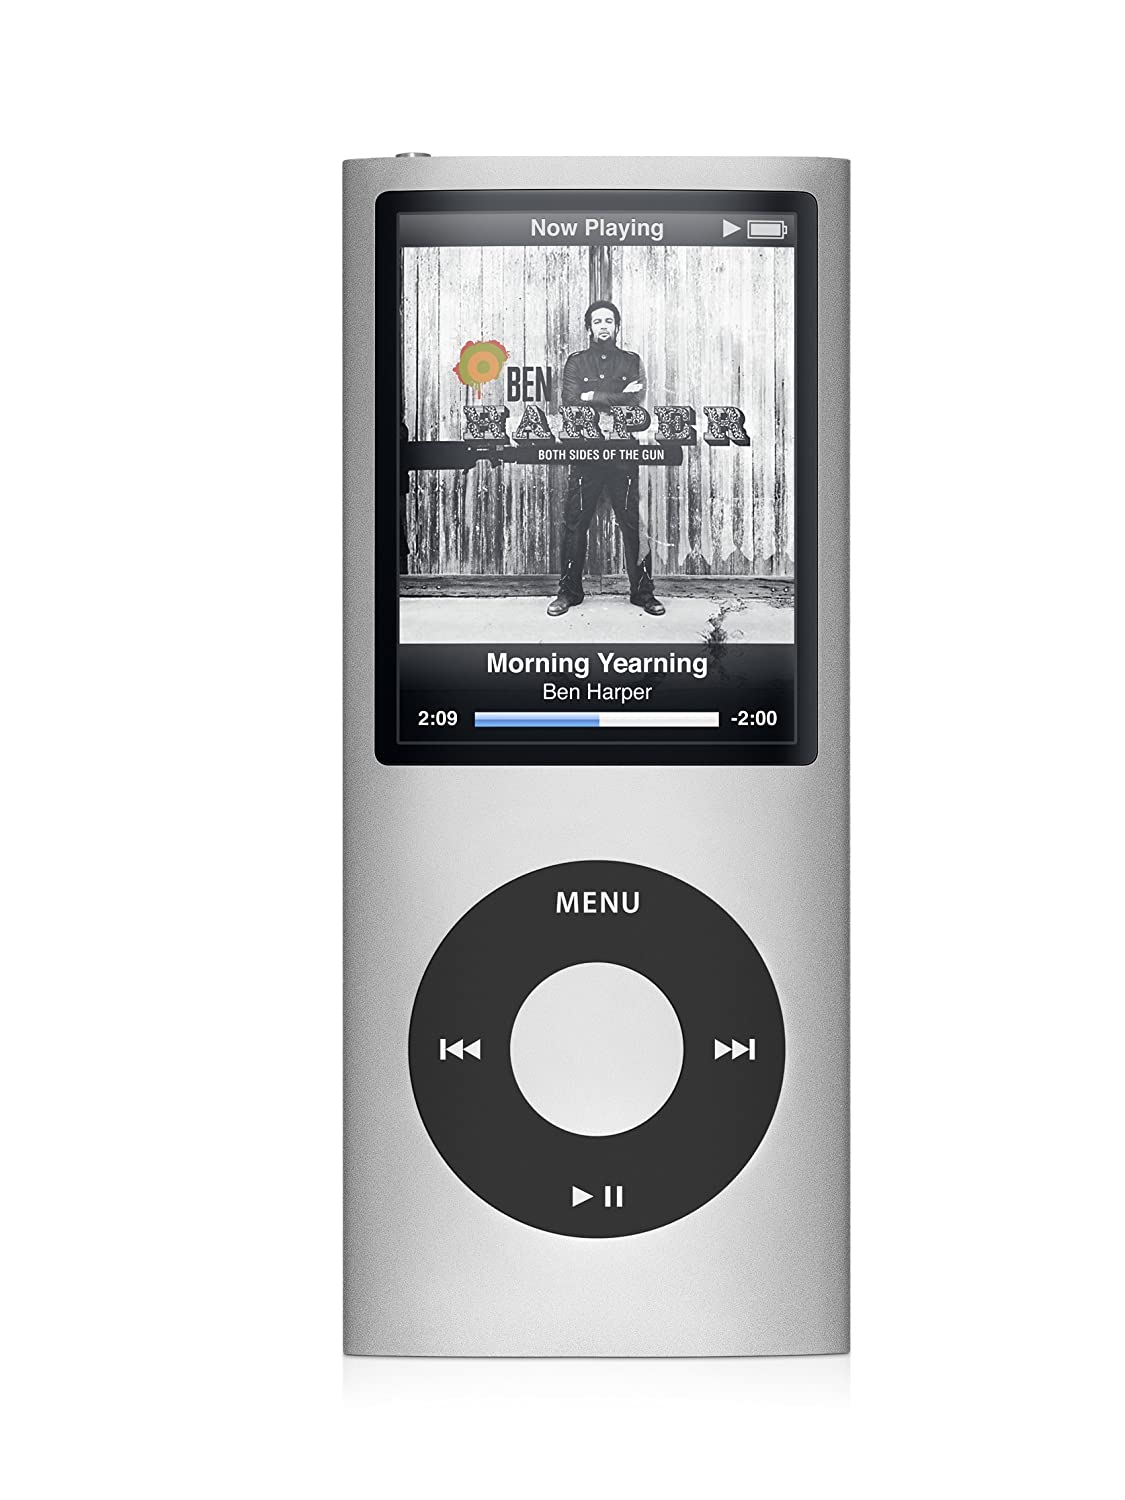 Amazon.com: Apple iPod nano 16 GB Silver (4th Generation) (Discontinued by  Manufacturer): Home Audio & Theater